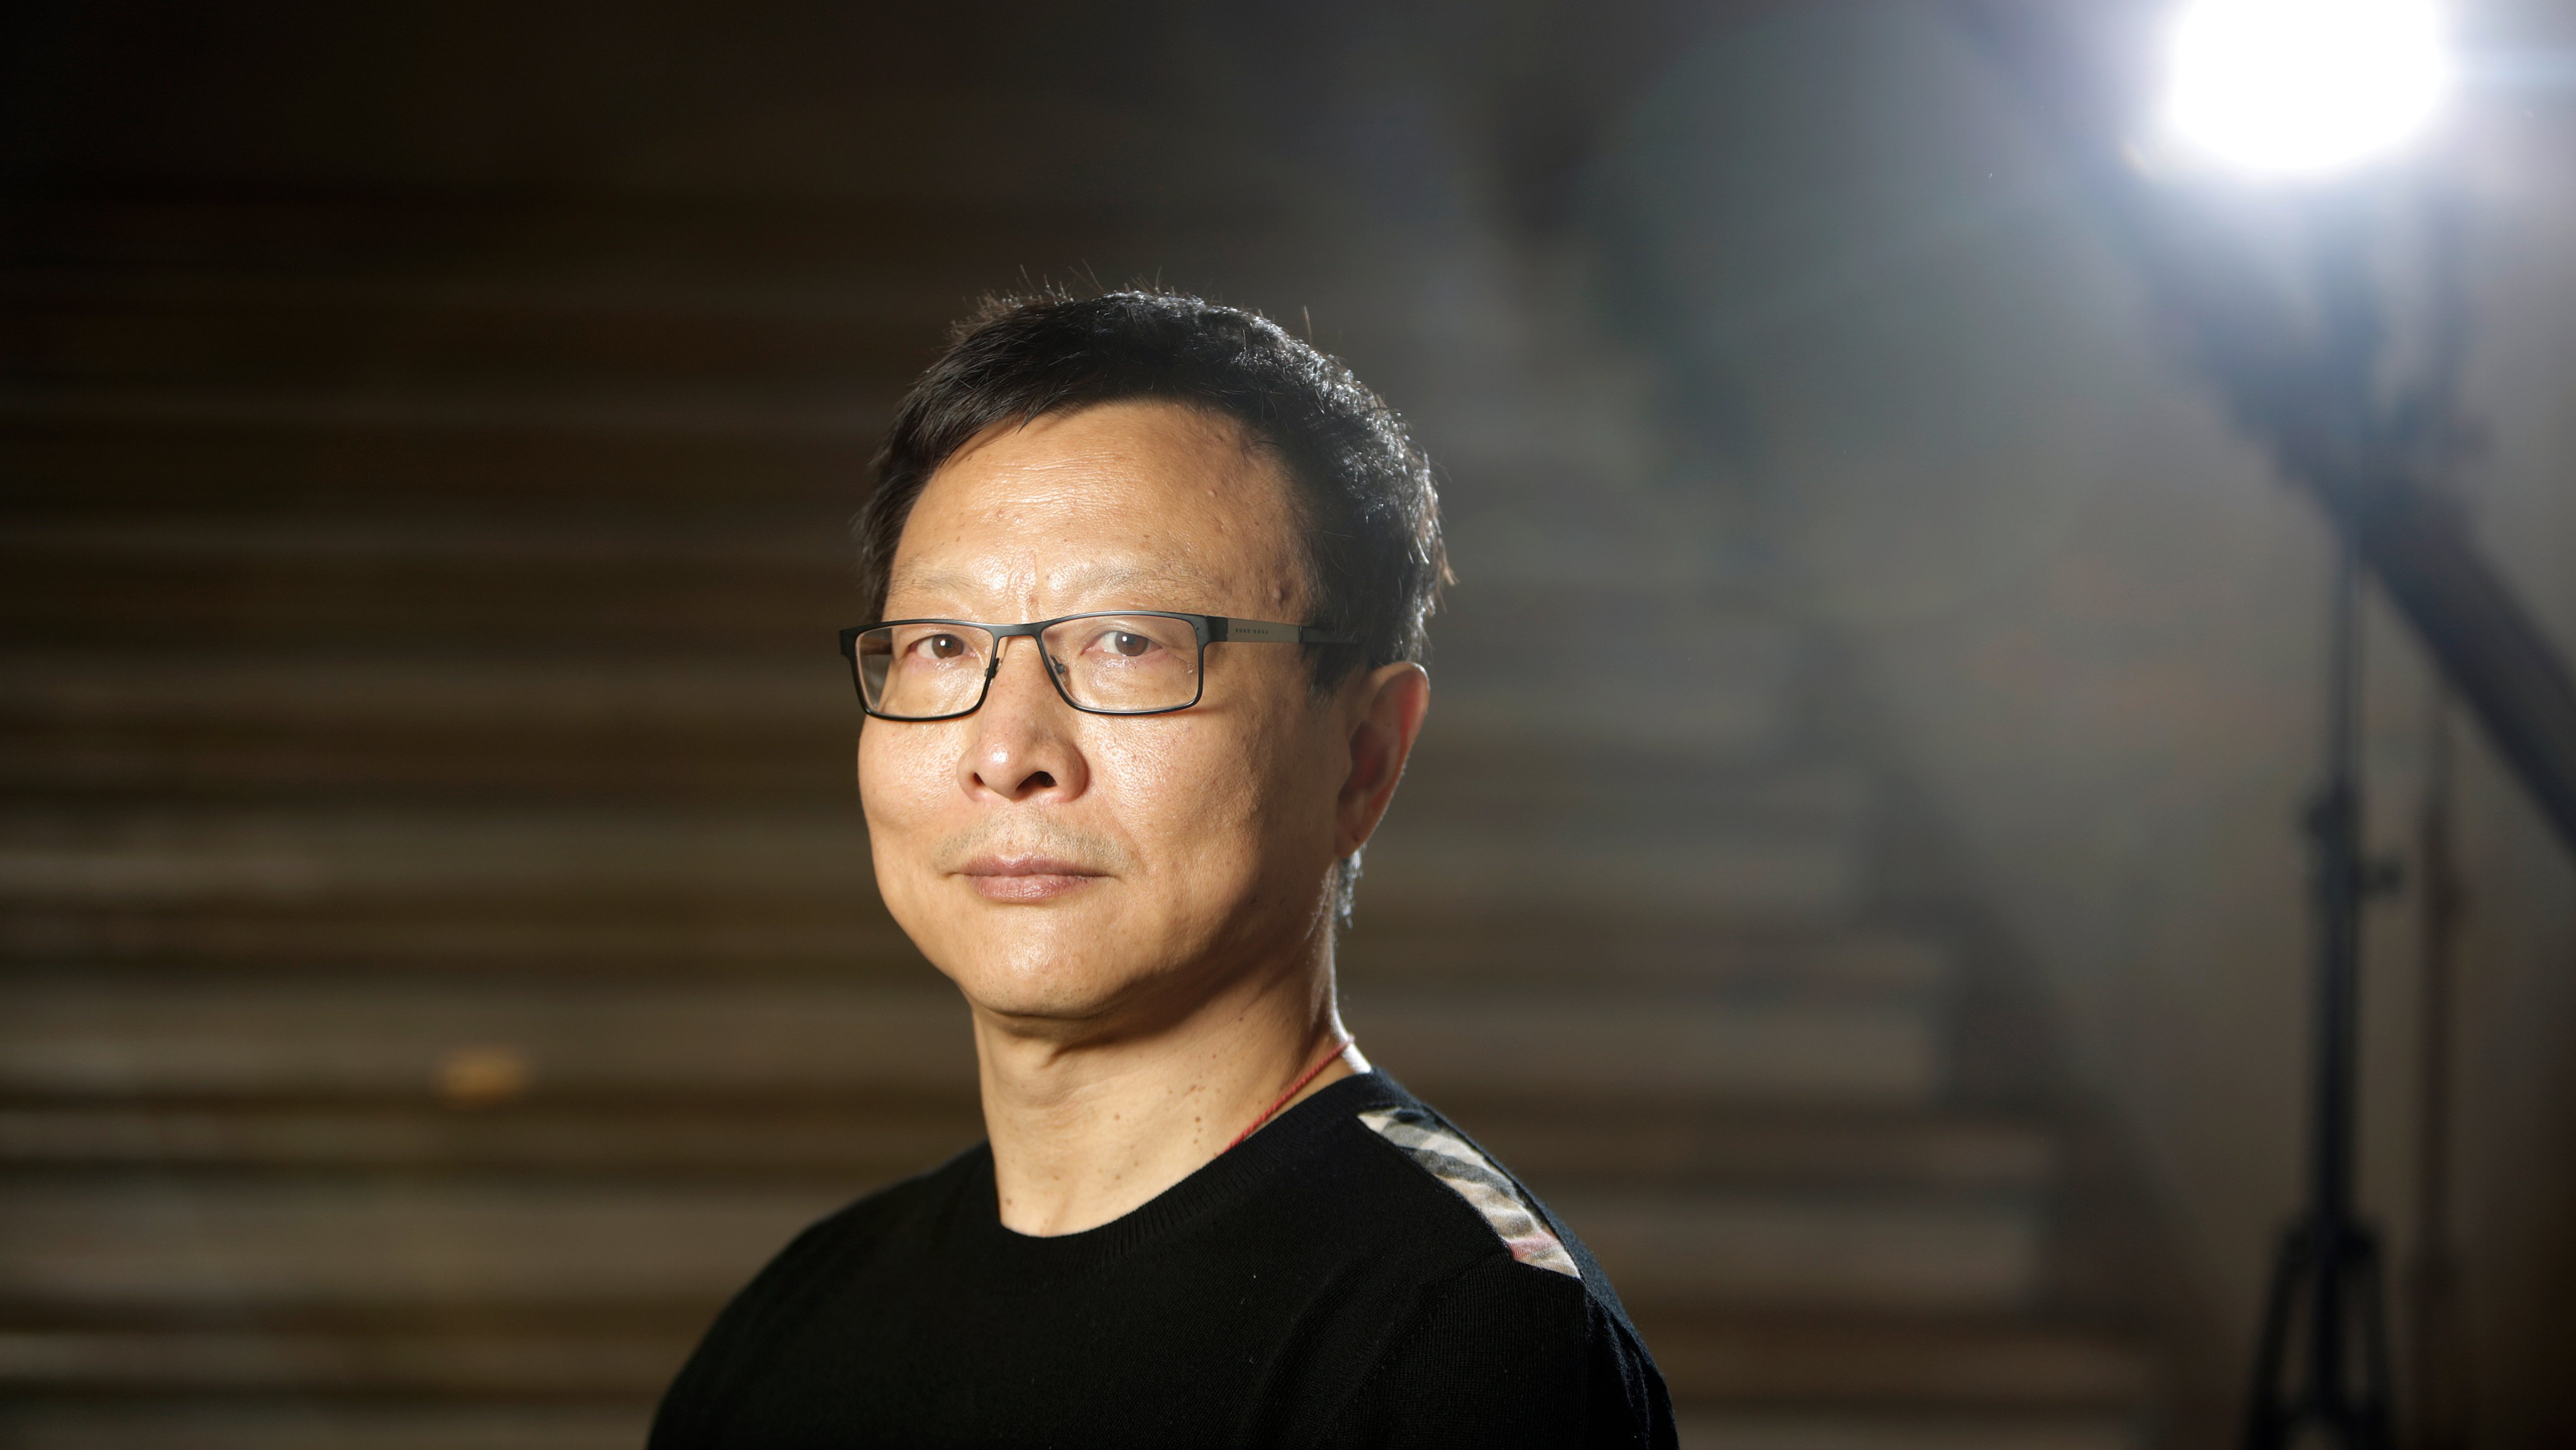 Dream of the Red Chamber composer Bright Sheng stands for a portrait at the War Memorial Opera House on Tuesday, August 16, 2016 in San Francisco, California.